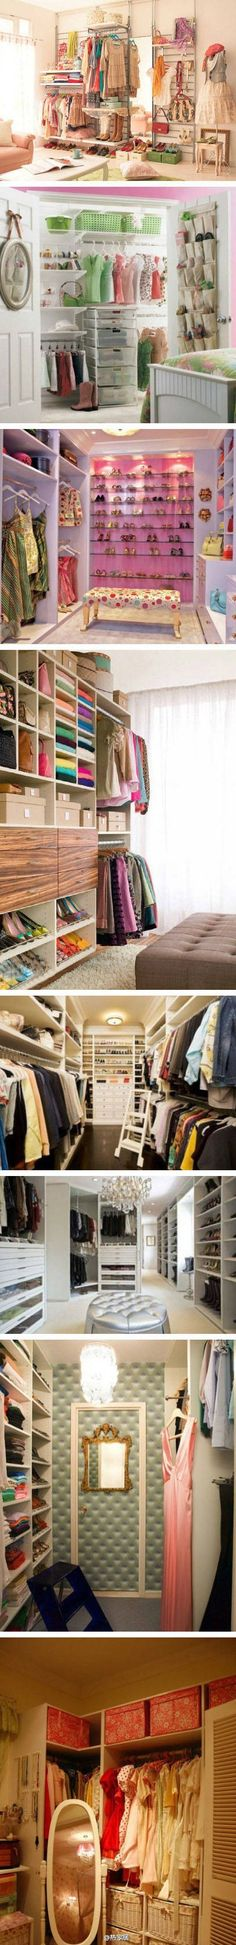 All about the closets